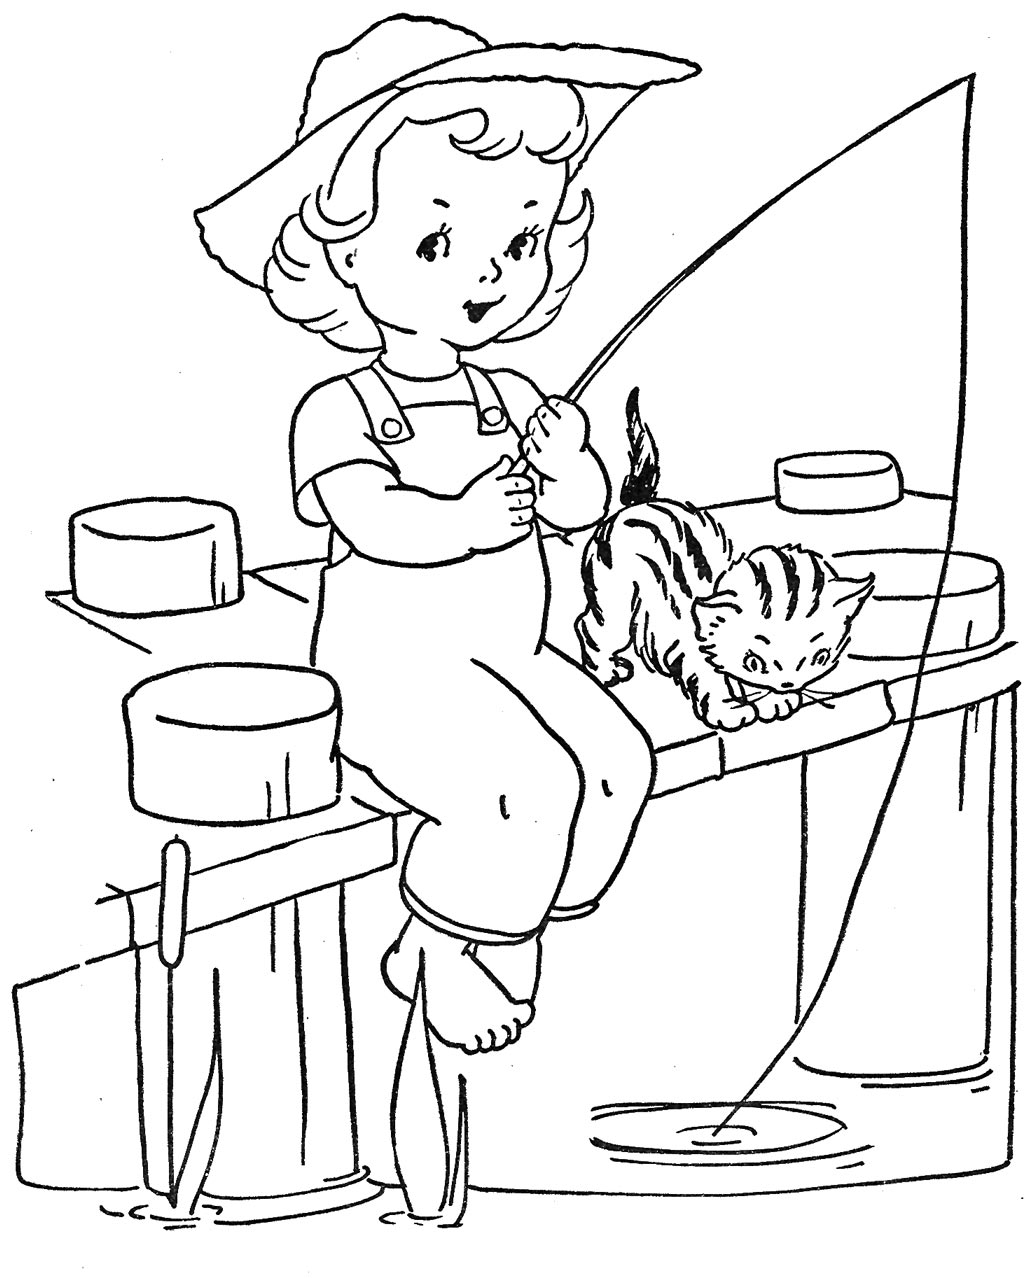 coloring pages of fishing - photo#4